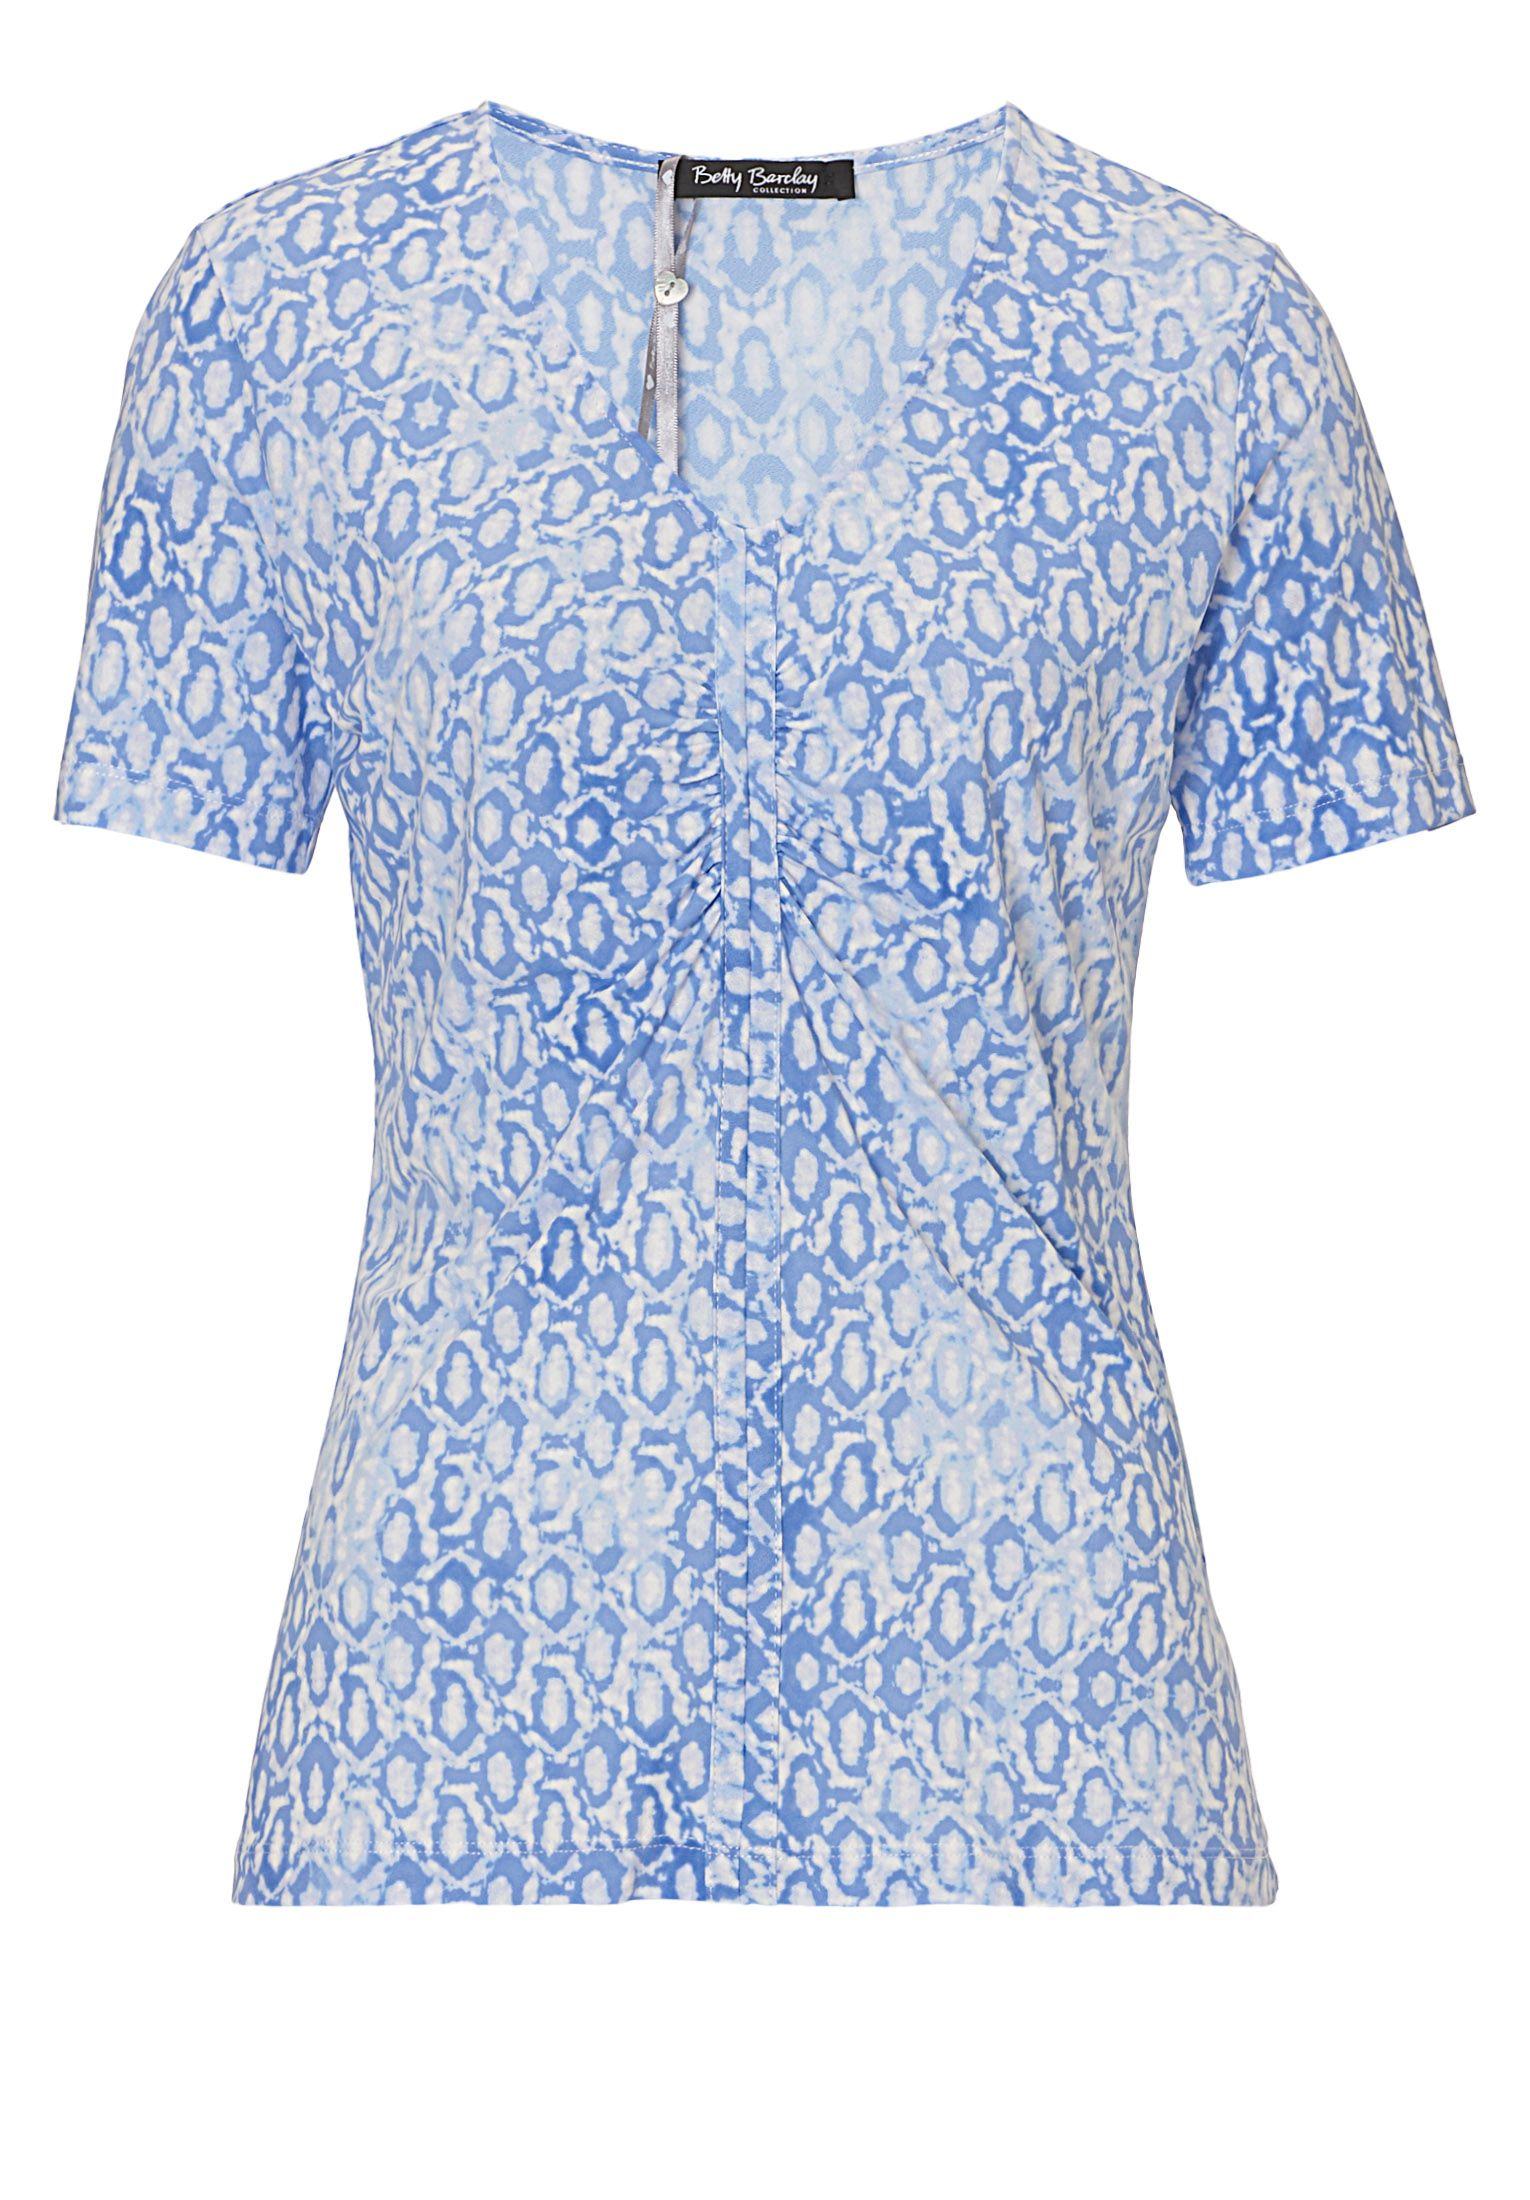 Betty Barclay Short sleeved printed top, Blue Multi